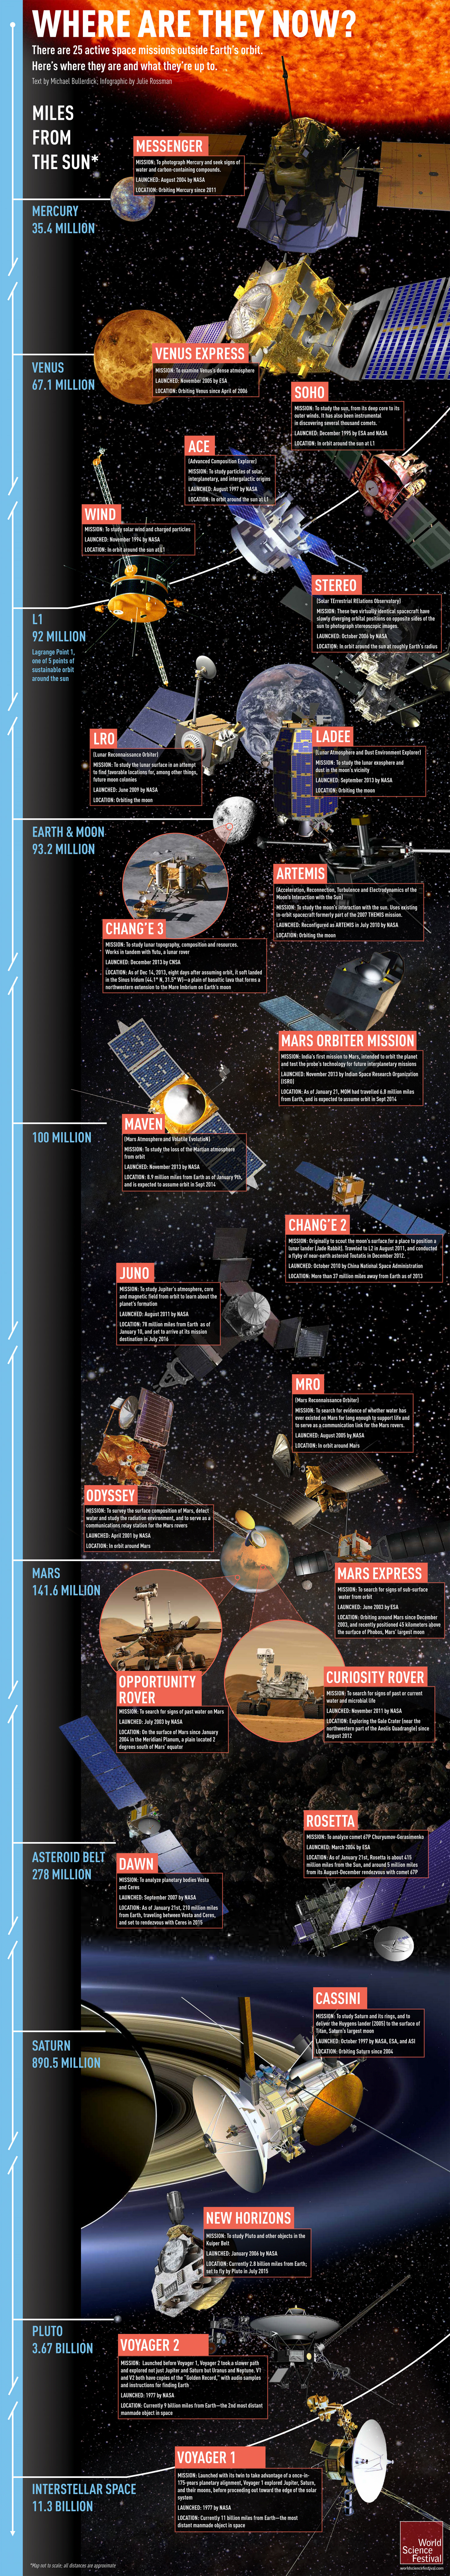 Where Are They Now: Checking In on Earth's 25 Active Missions  Infographic